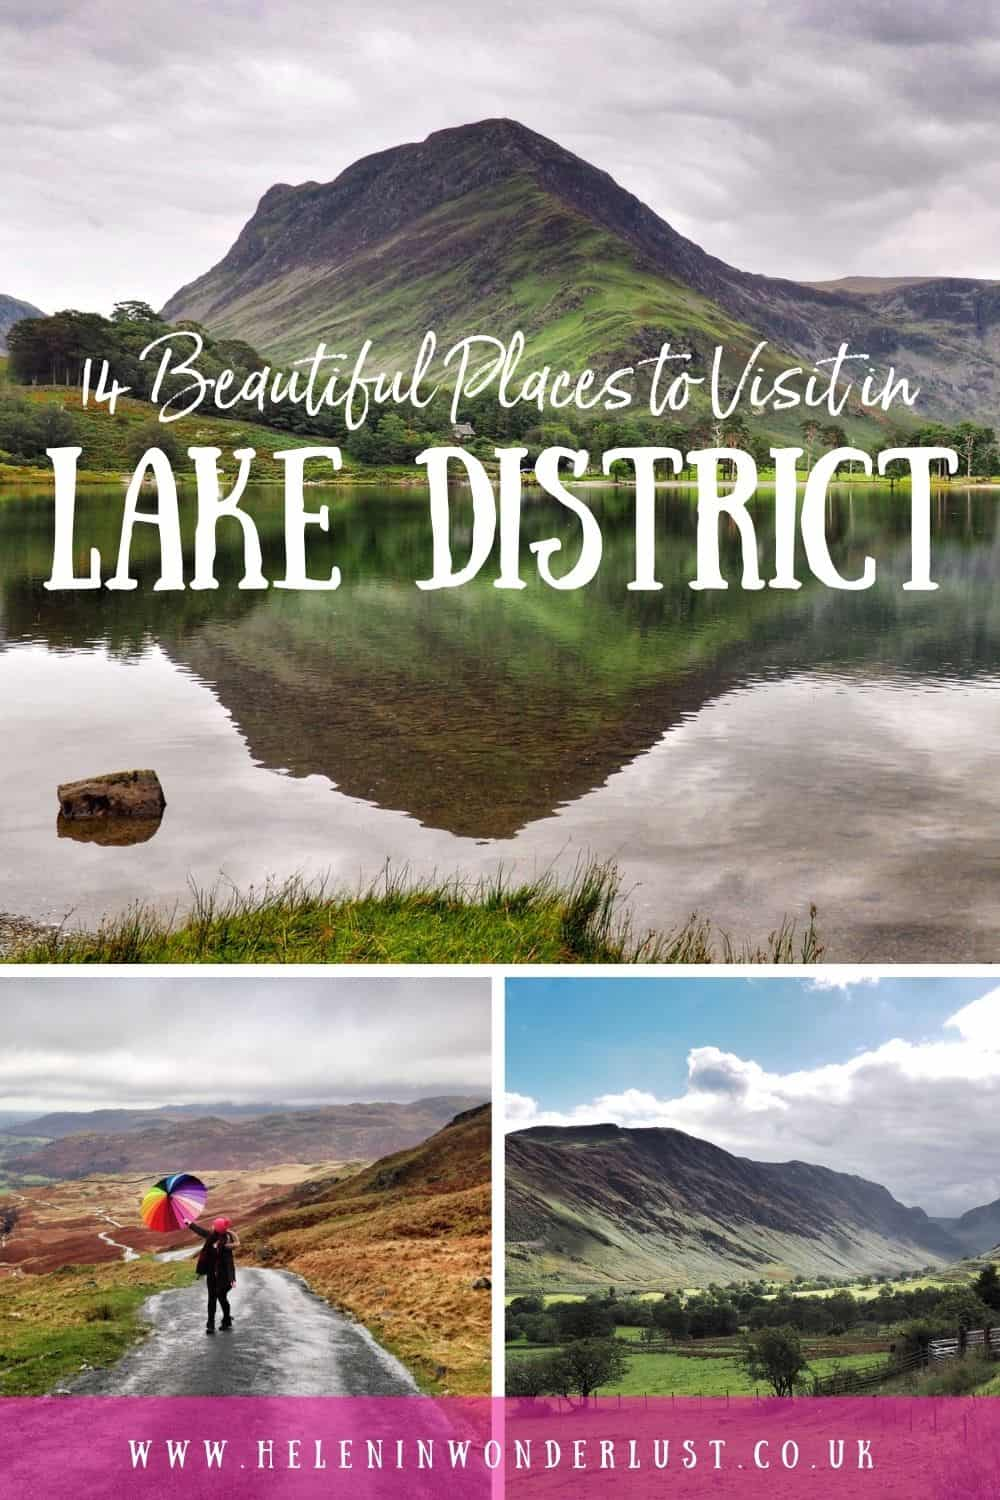 14 Beautiful Places to Visit in the Lake District